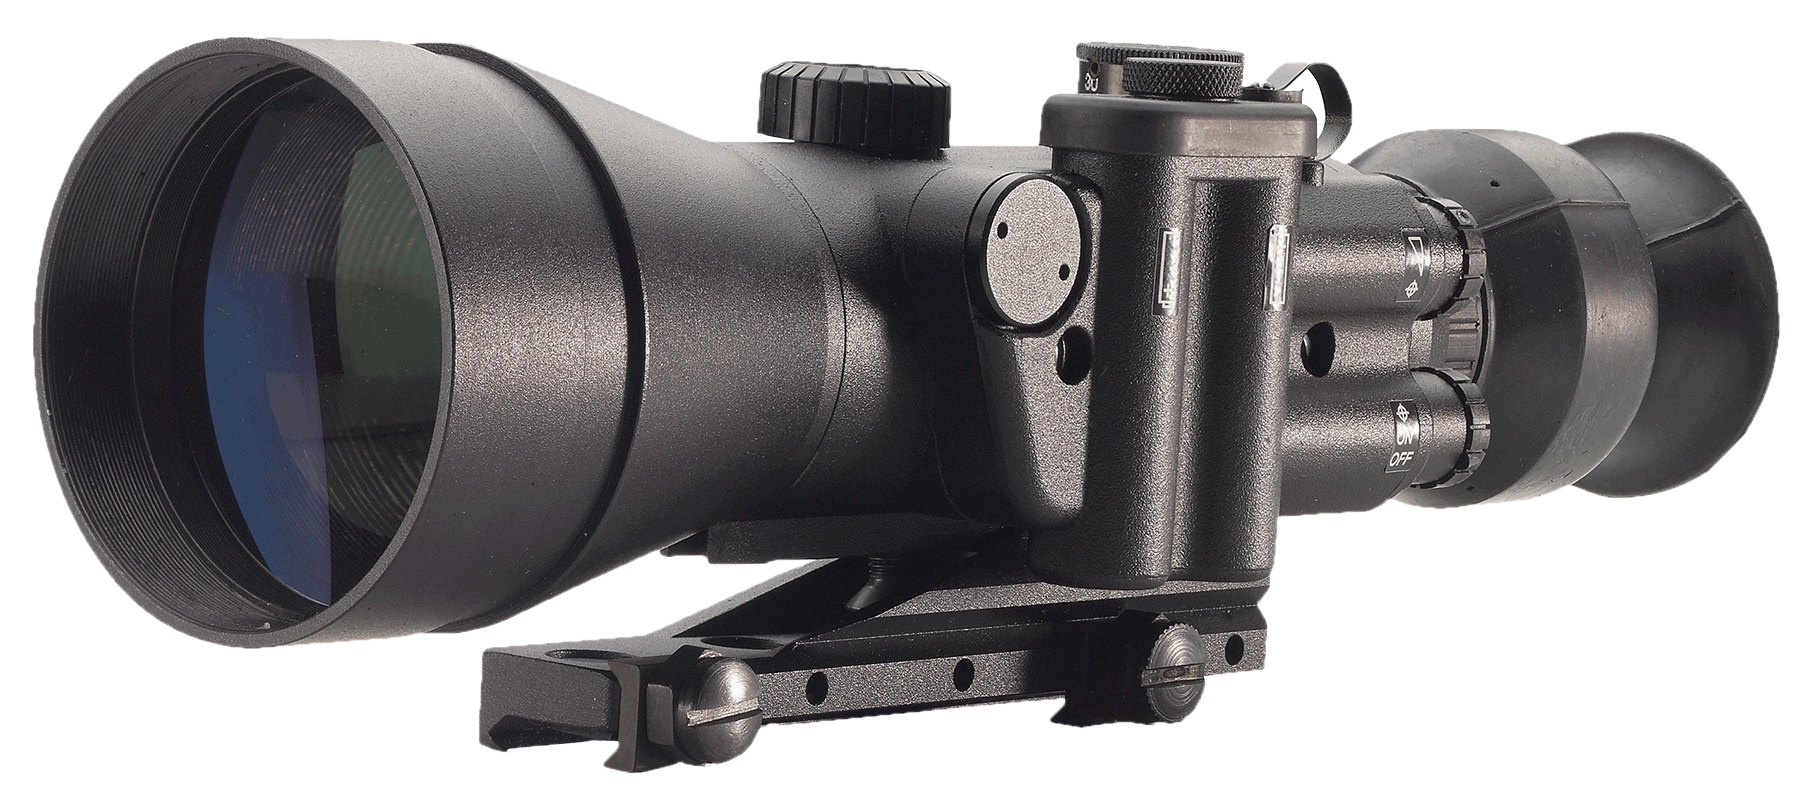 Night Optics NS-740-2BW D-740 Night Vision Scope Gen 2+ 4x 100m 525ft @ 1000yds